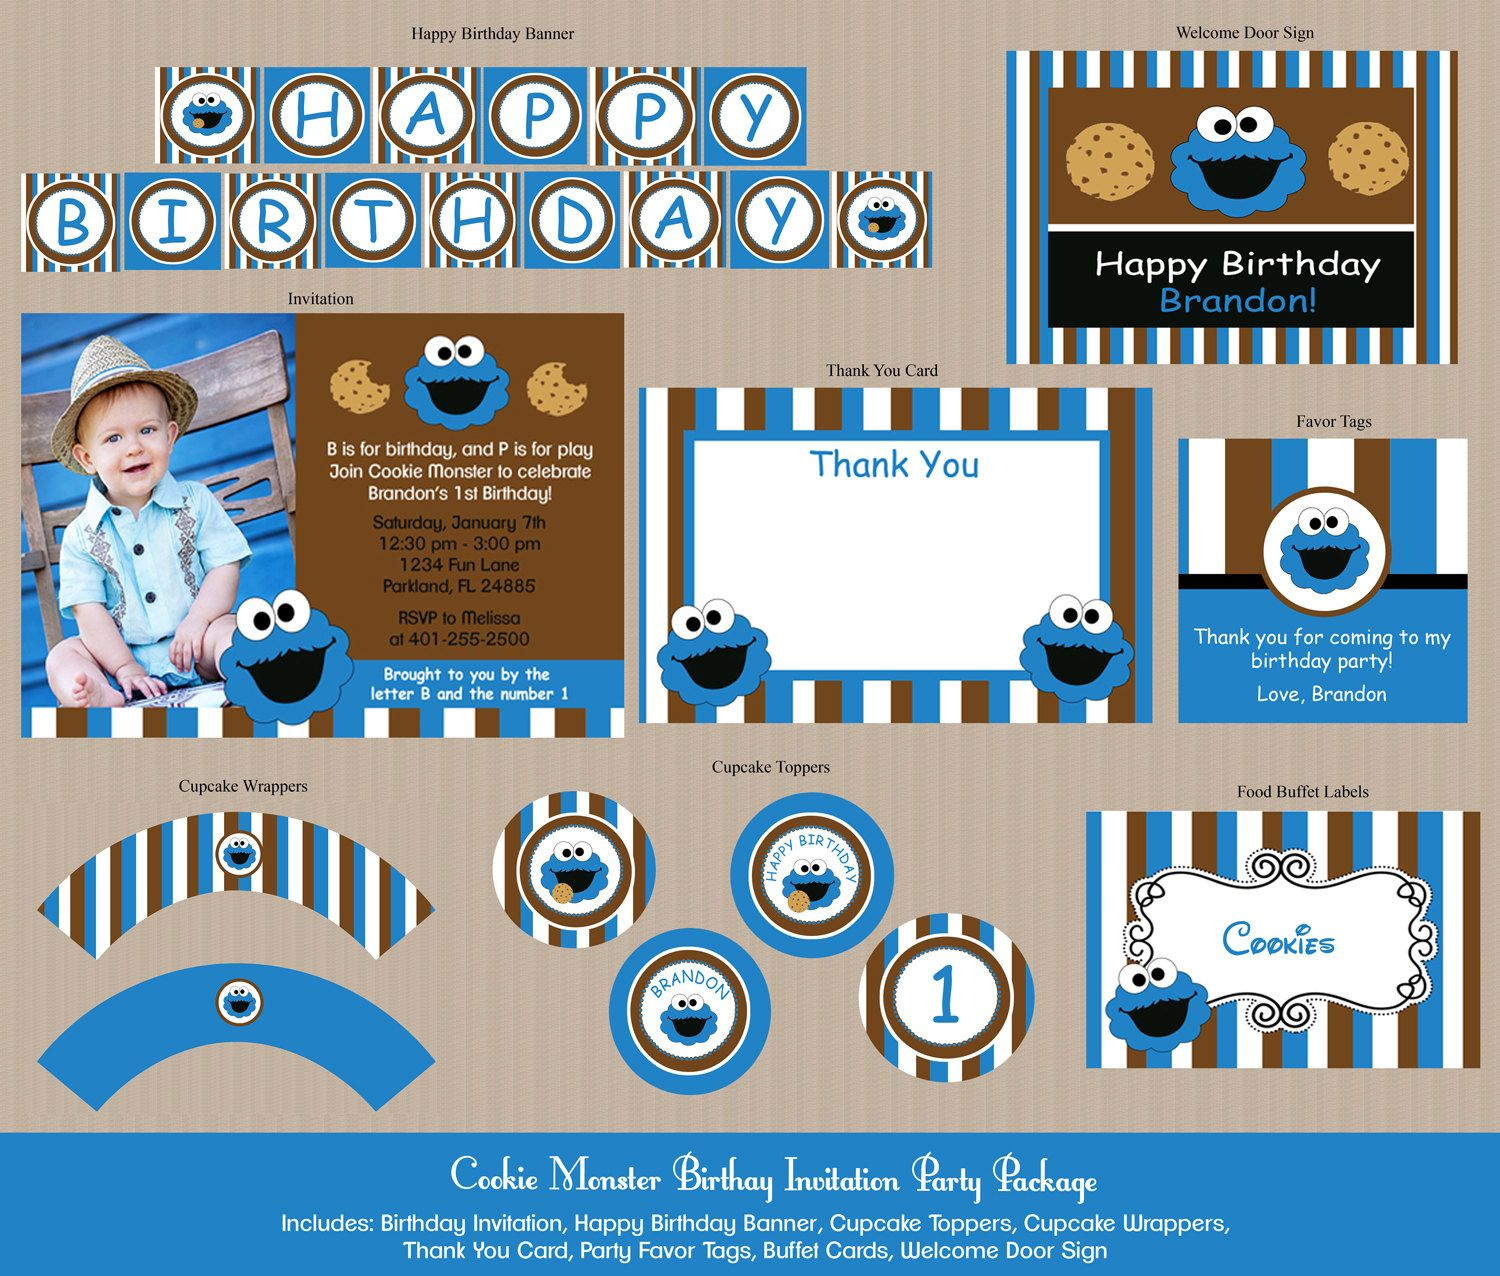 Cookie Monster Birthday Invitation Party Package by Honeyprint, $30.00